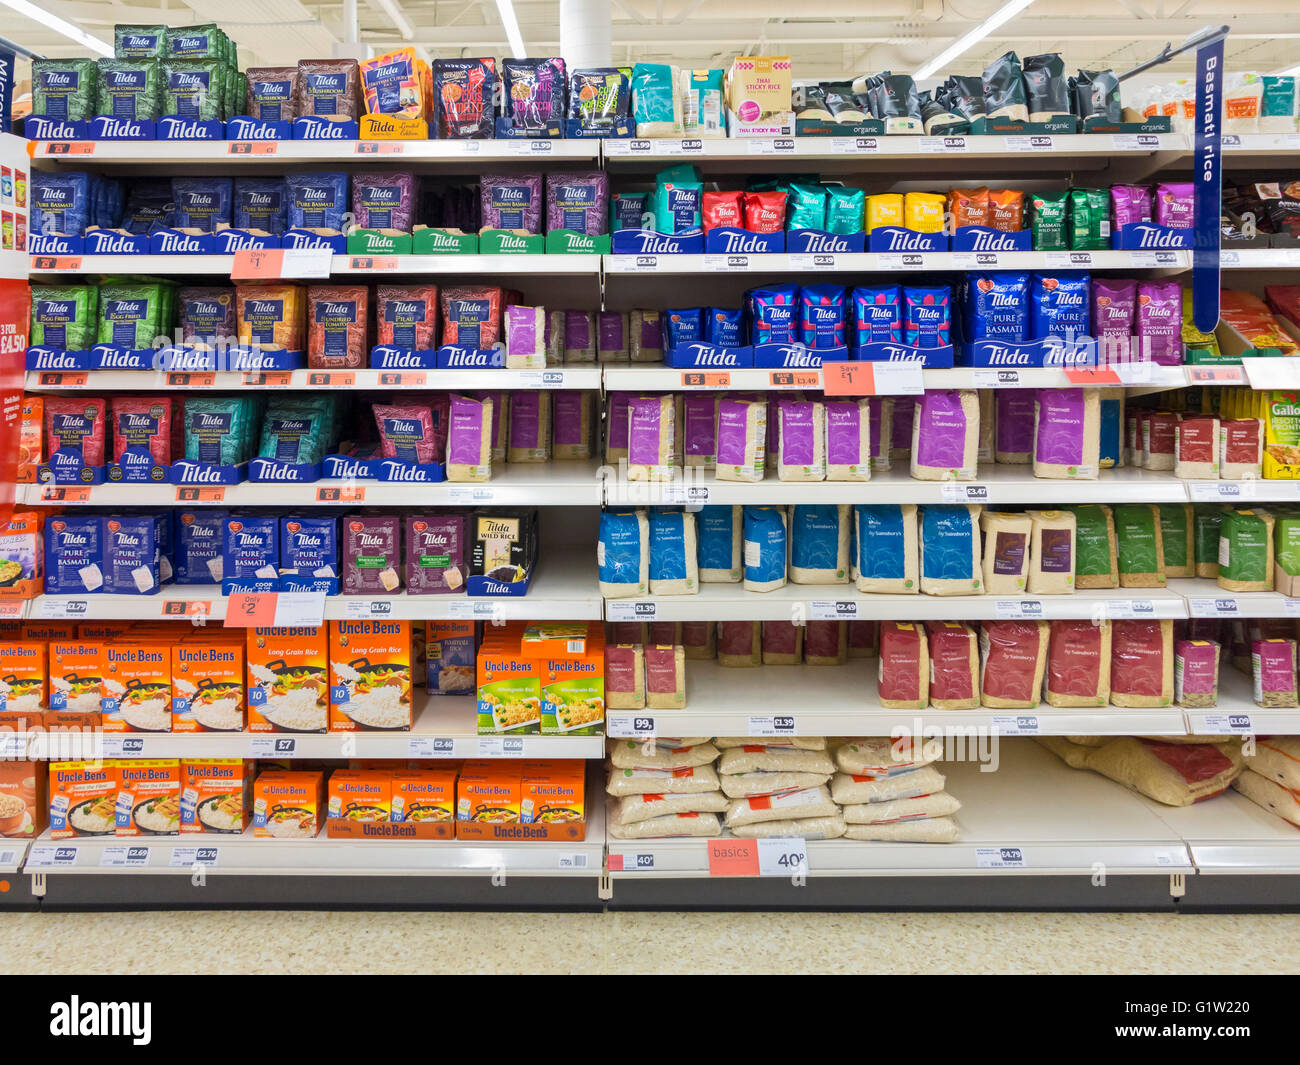 rice for sale on a sainsbury supermarket shelf uk stock photo 104427288 alamy. Black Bedroom Furniture Sets. Home Design Ideas